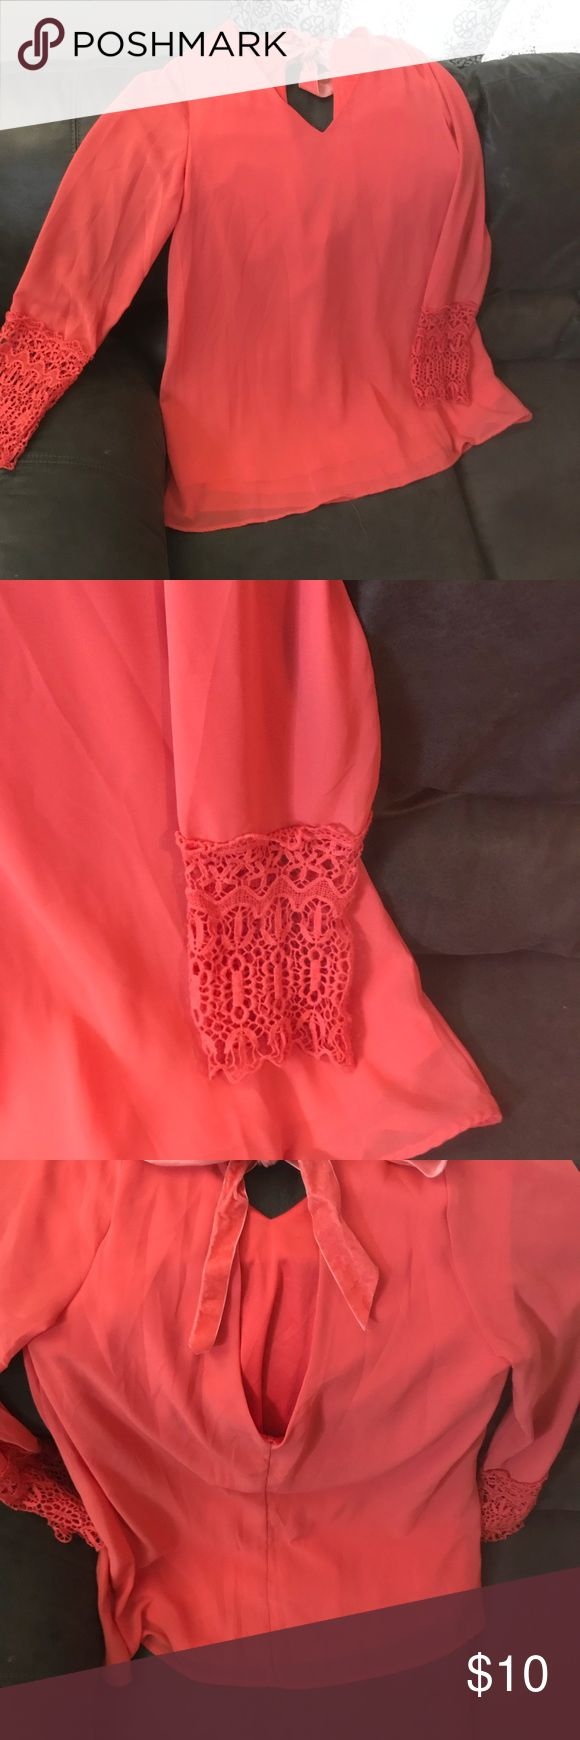 Umgee chiffon trapeze dress Coral. V-neck. Deep-V drop back. Velvet bow closure at the top of the back. Light wear. Great condition! Umgee Dresses Long Sleeve